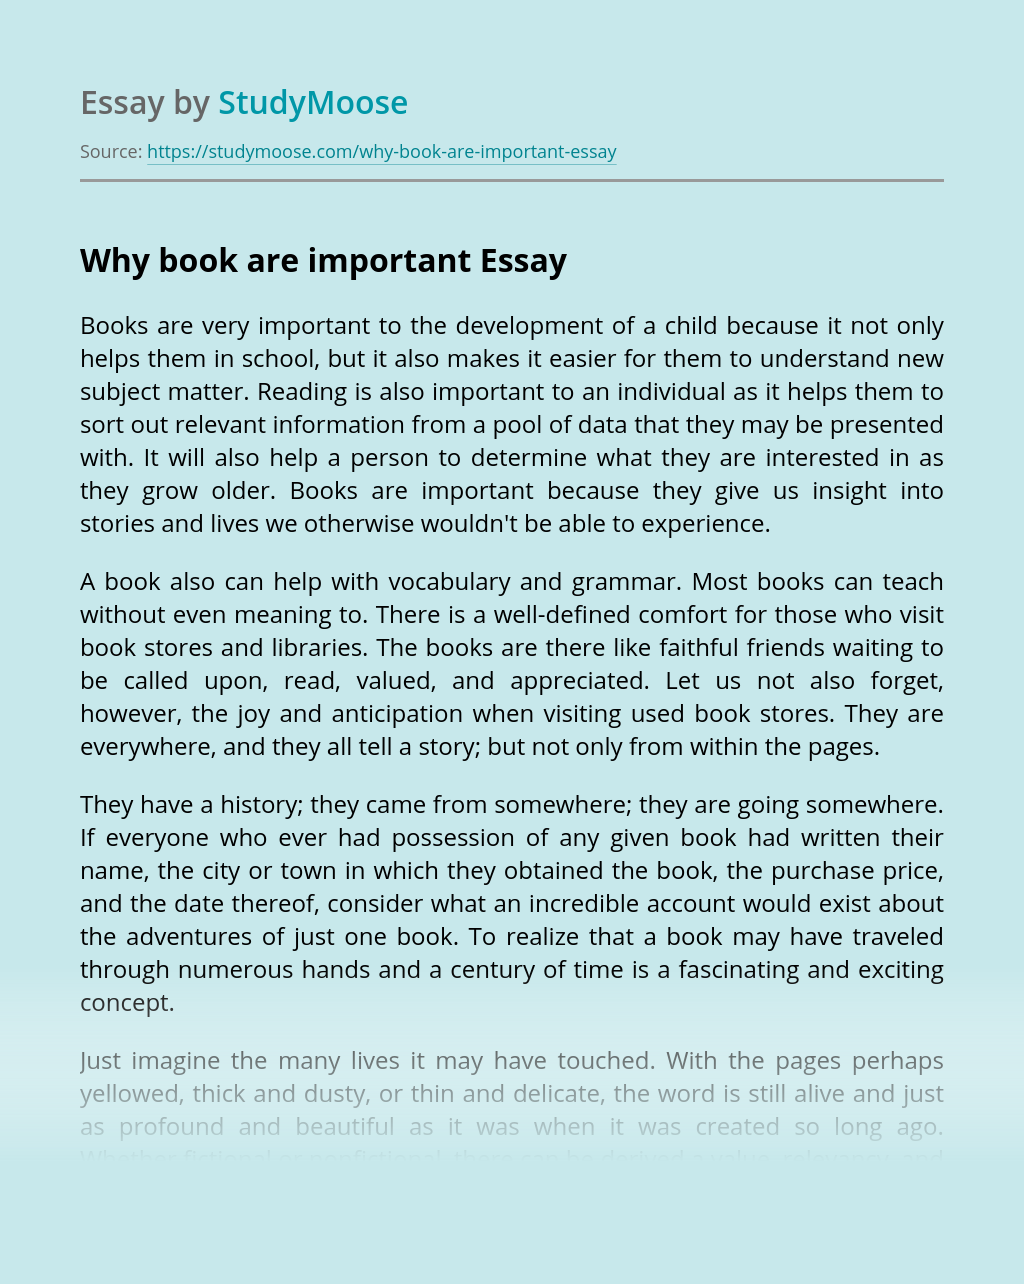 Why book are important